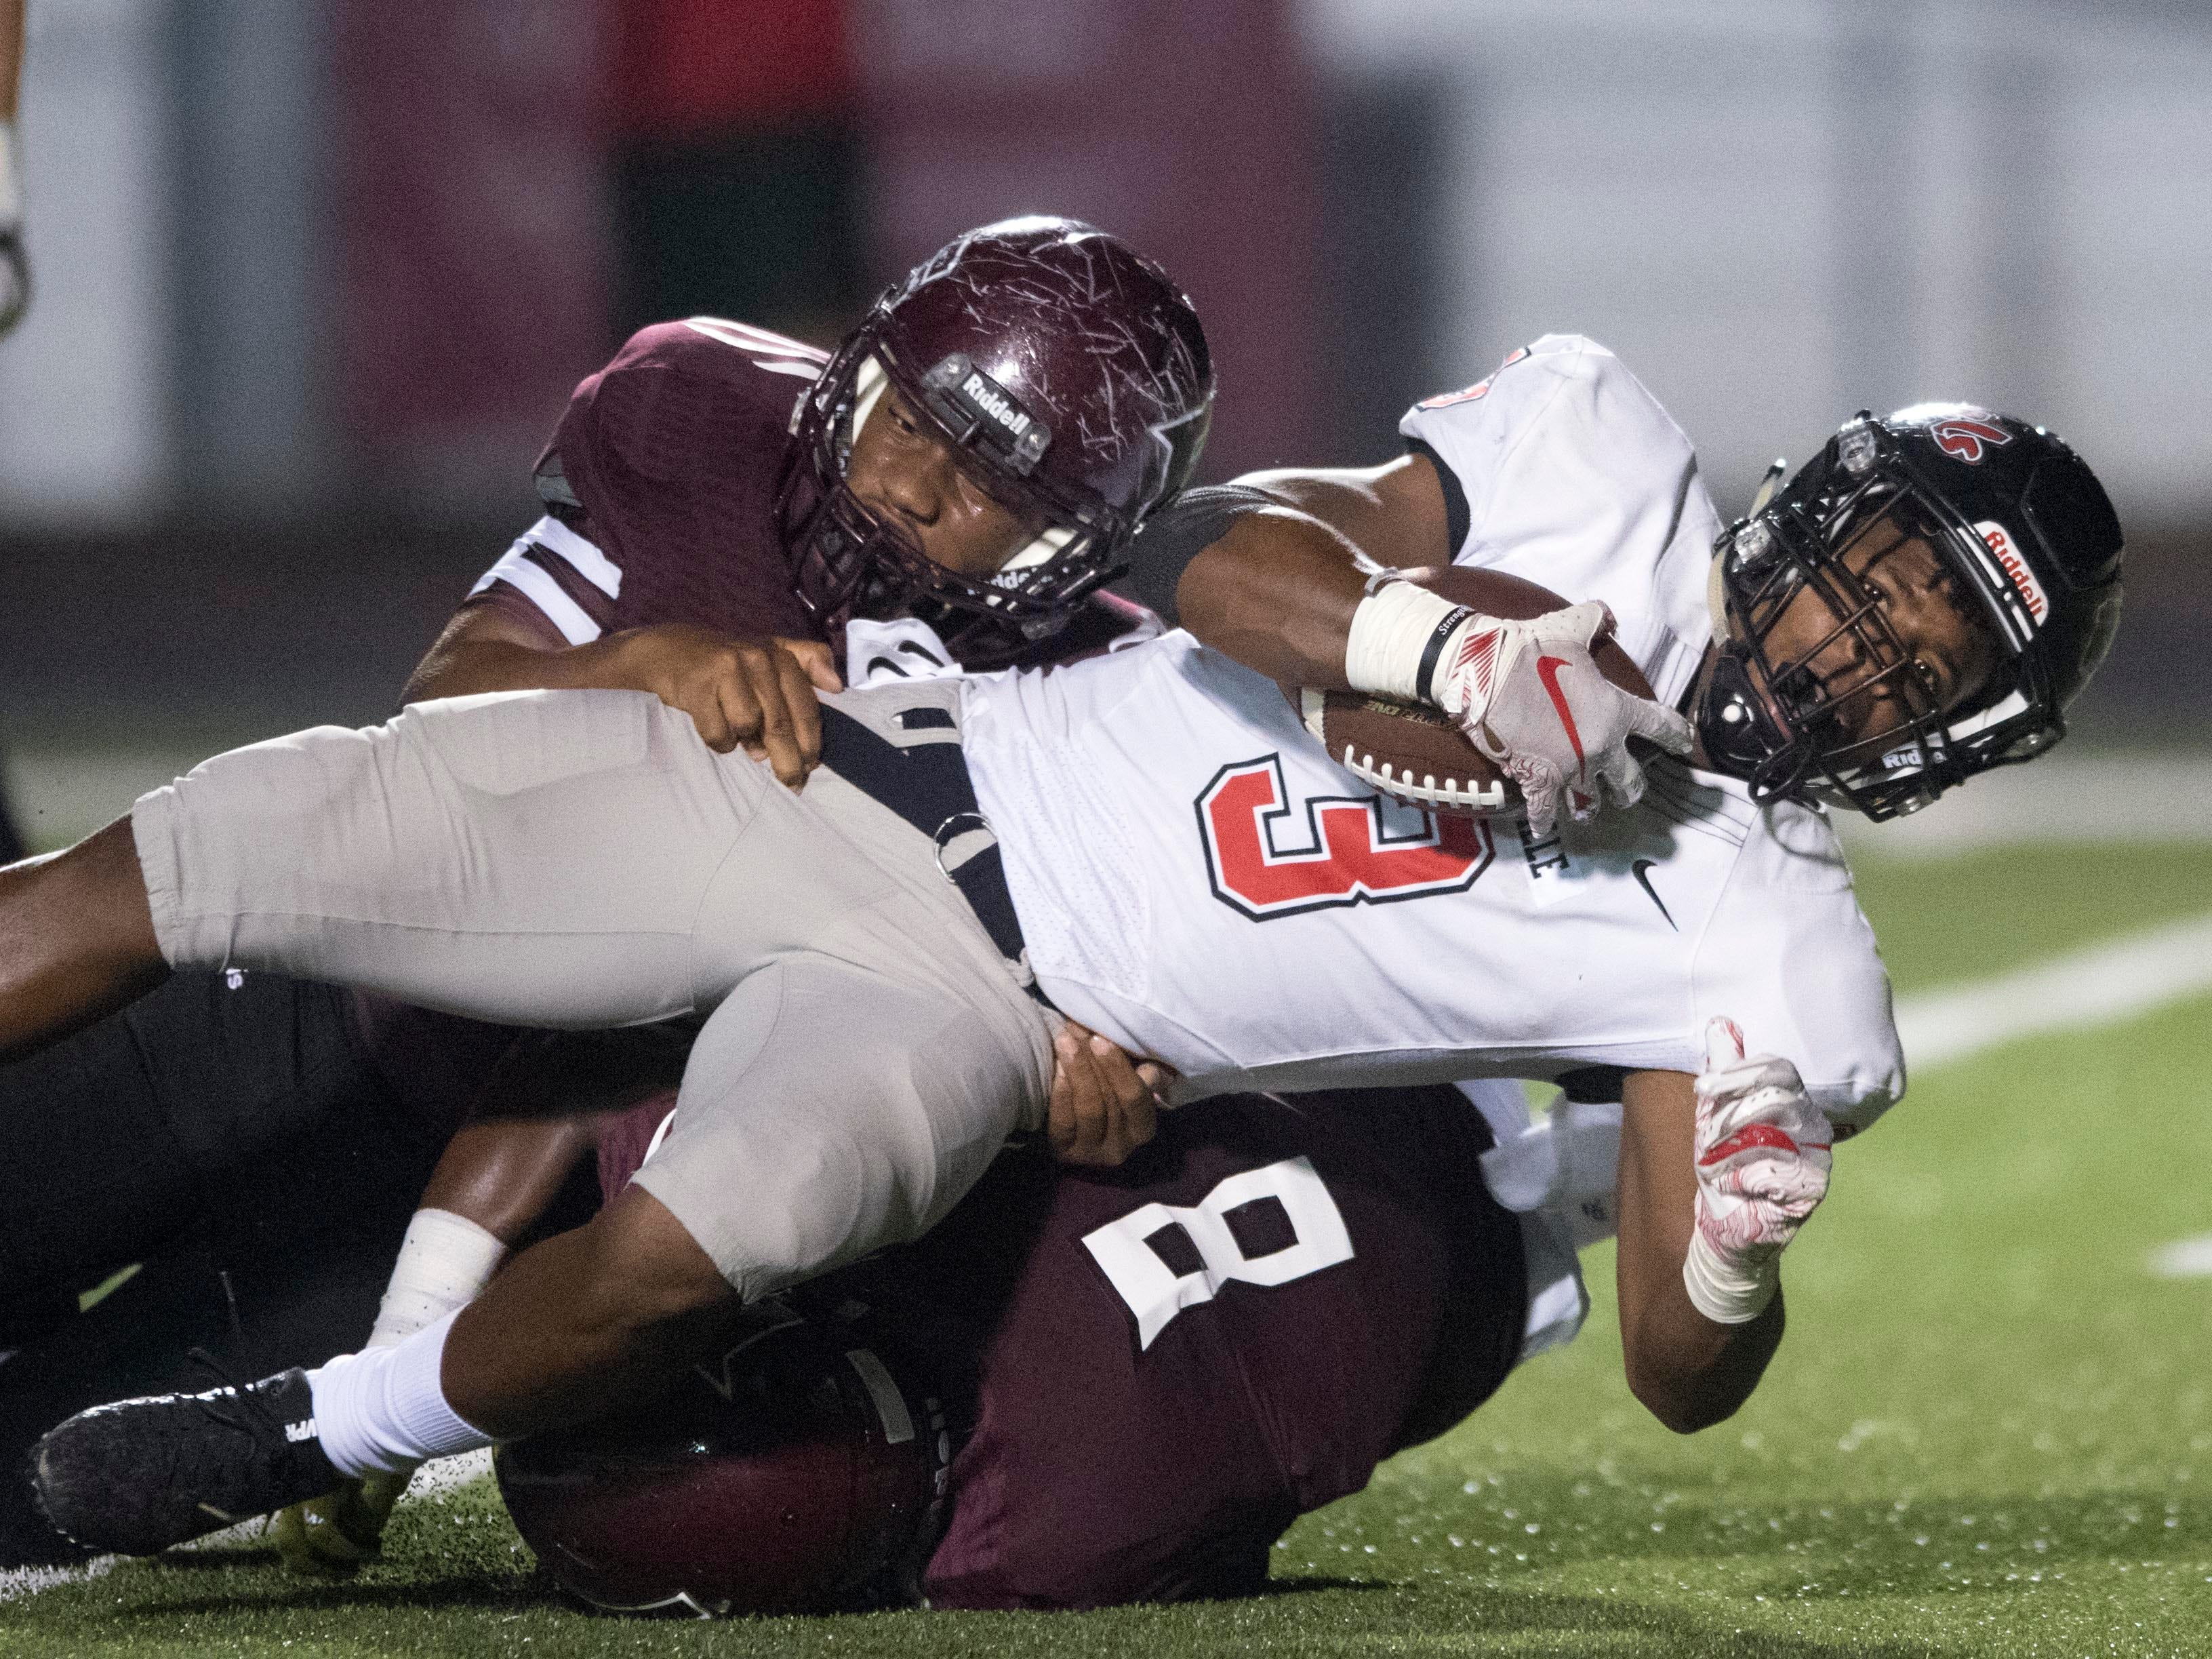 Maryville's A.J. Davis (3) goes it taken down by Fulton's Terrence Brown (22) and DaShaun McKinney (8) in the football game at Fulton on Friday, September 21, 2018.